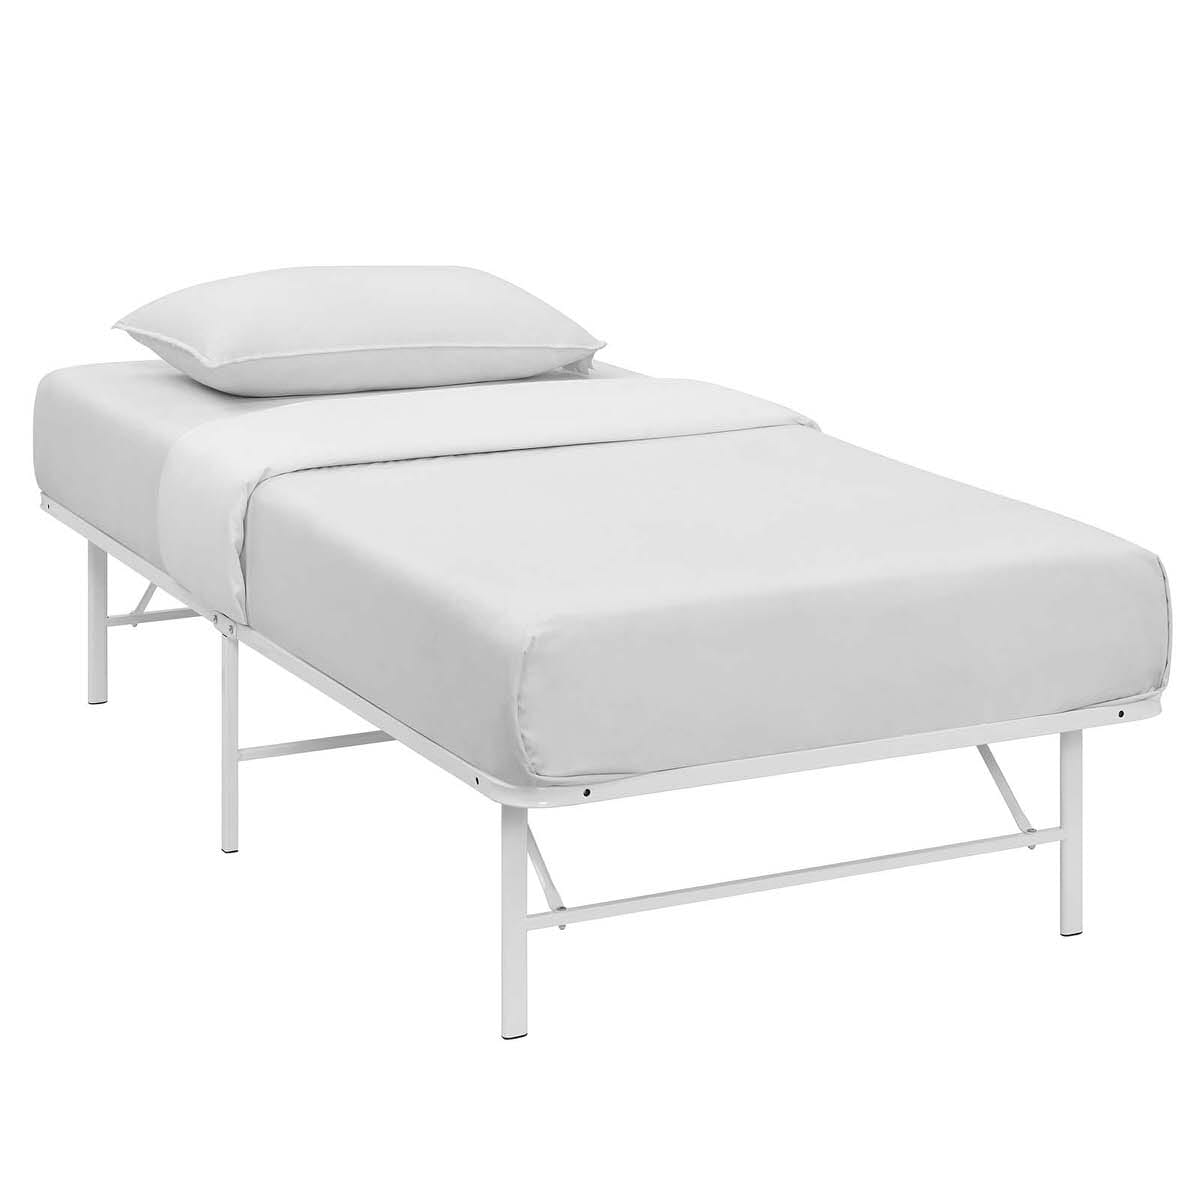 32bb12f04ad4 Horizon Twin Stainless Steel Bed Frame White by Modern Living